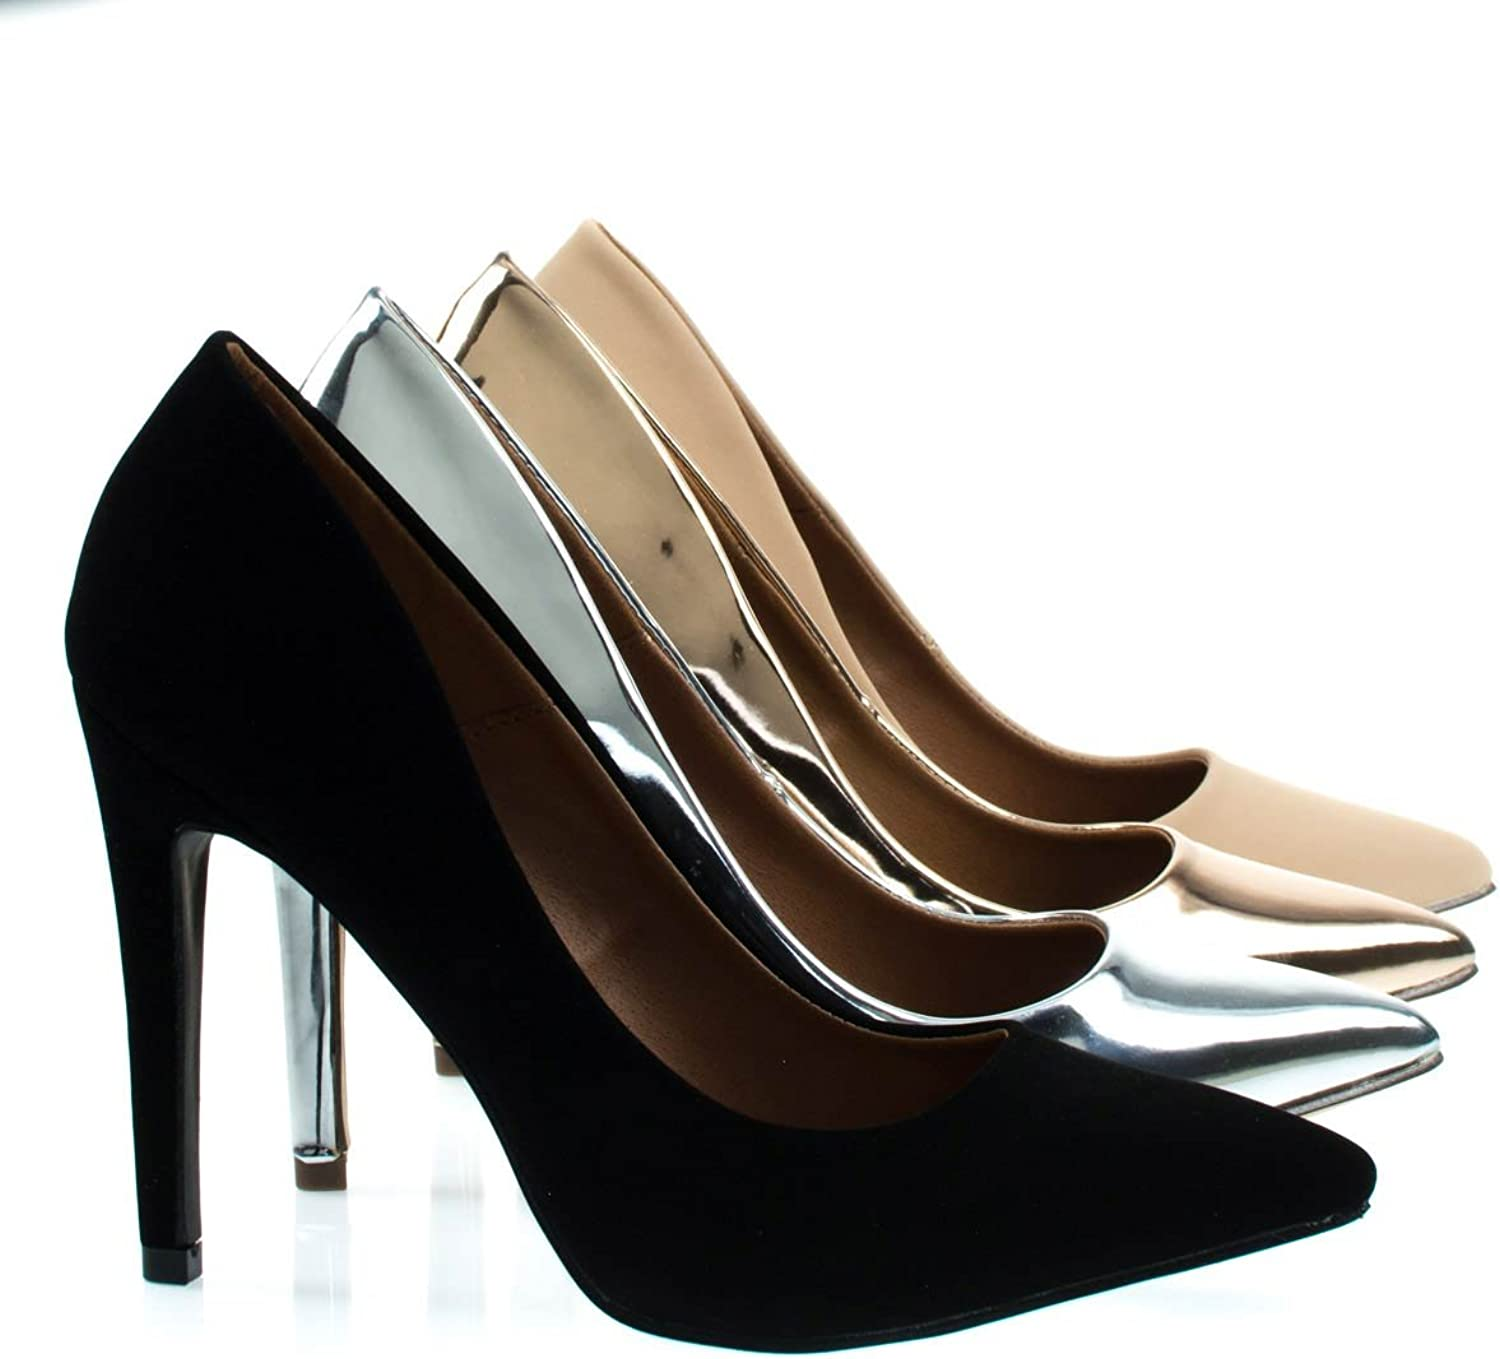 Bonnibel Classic Pointed Toe High Heel Stiletto Dress Pump